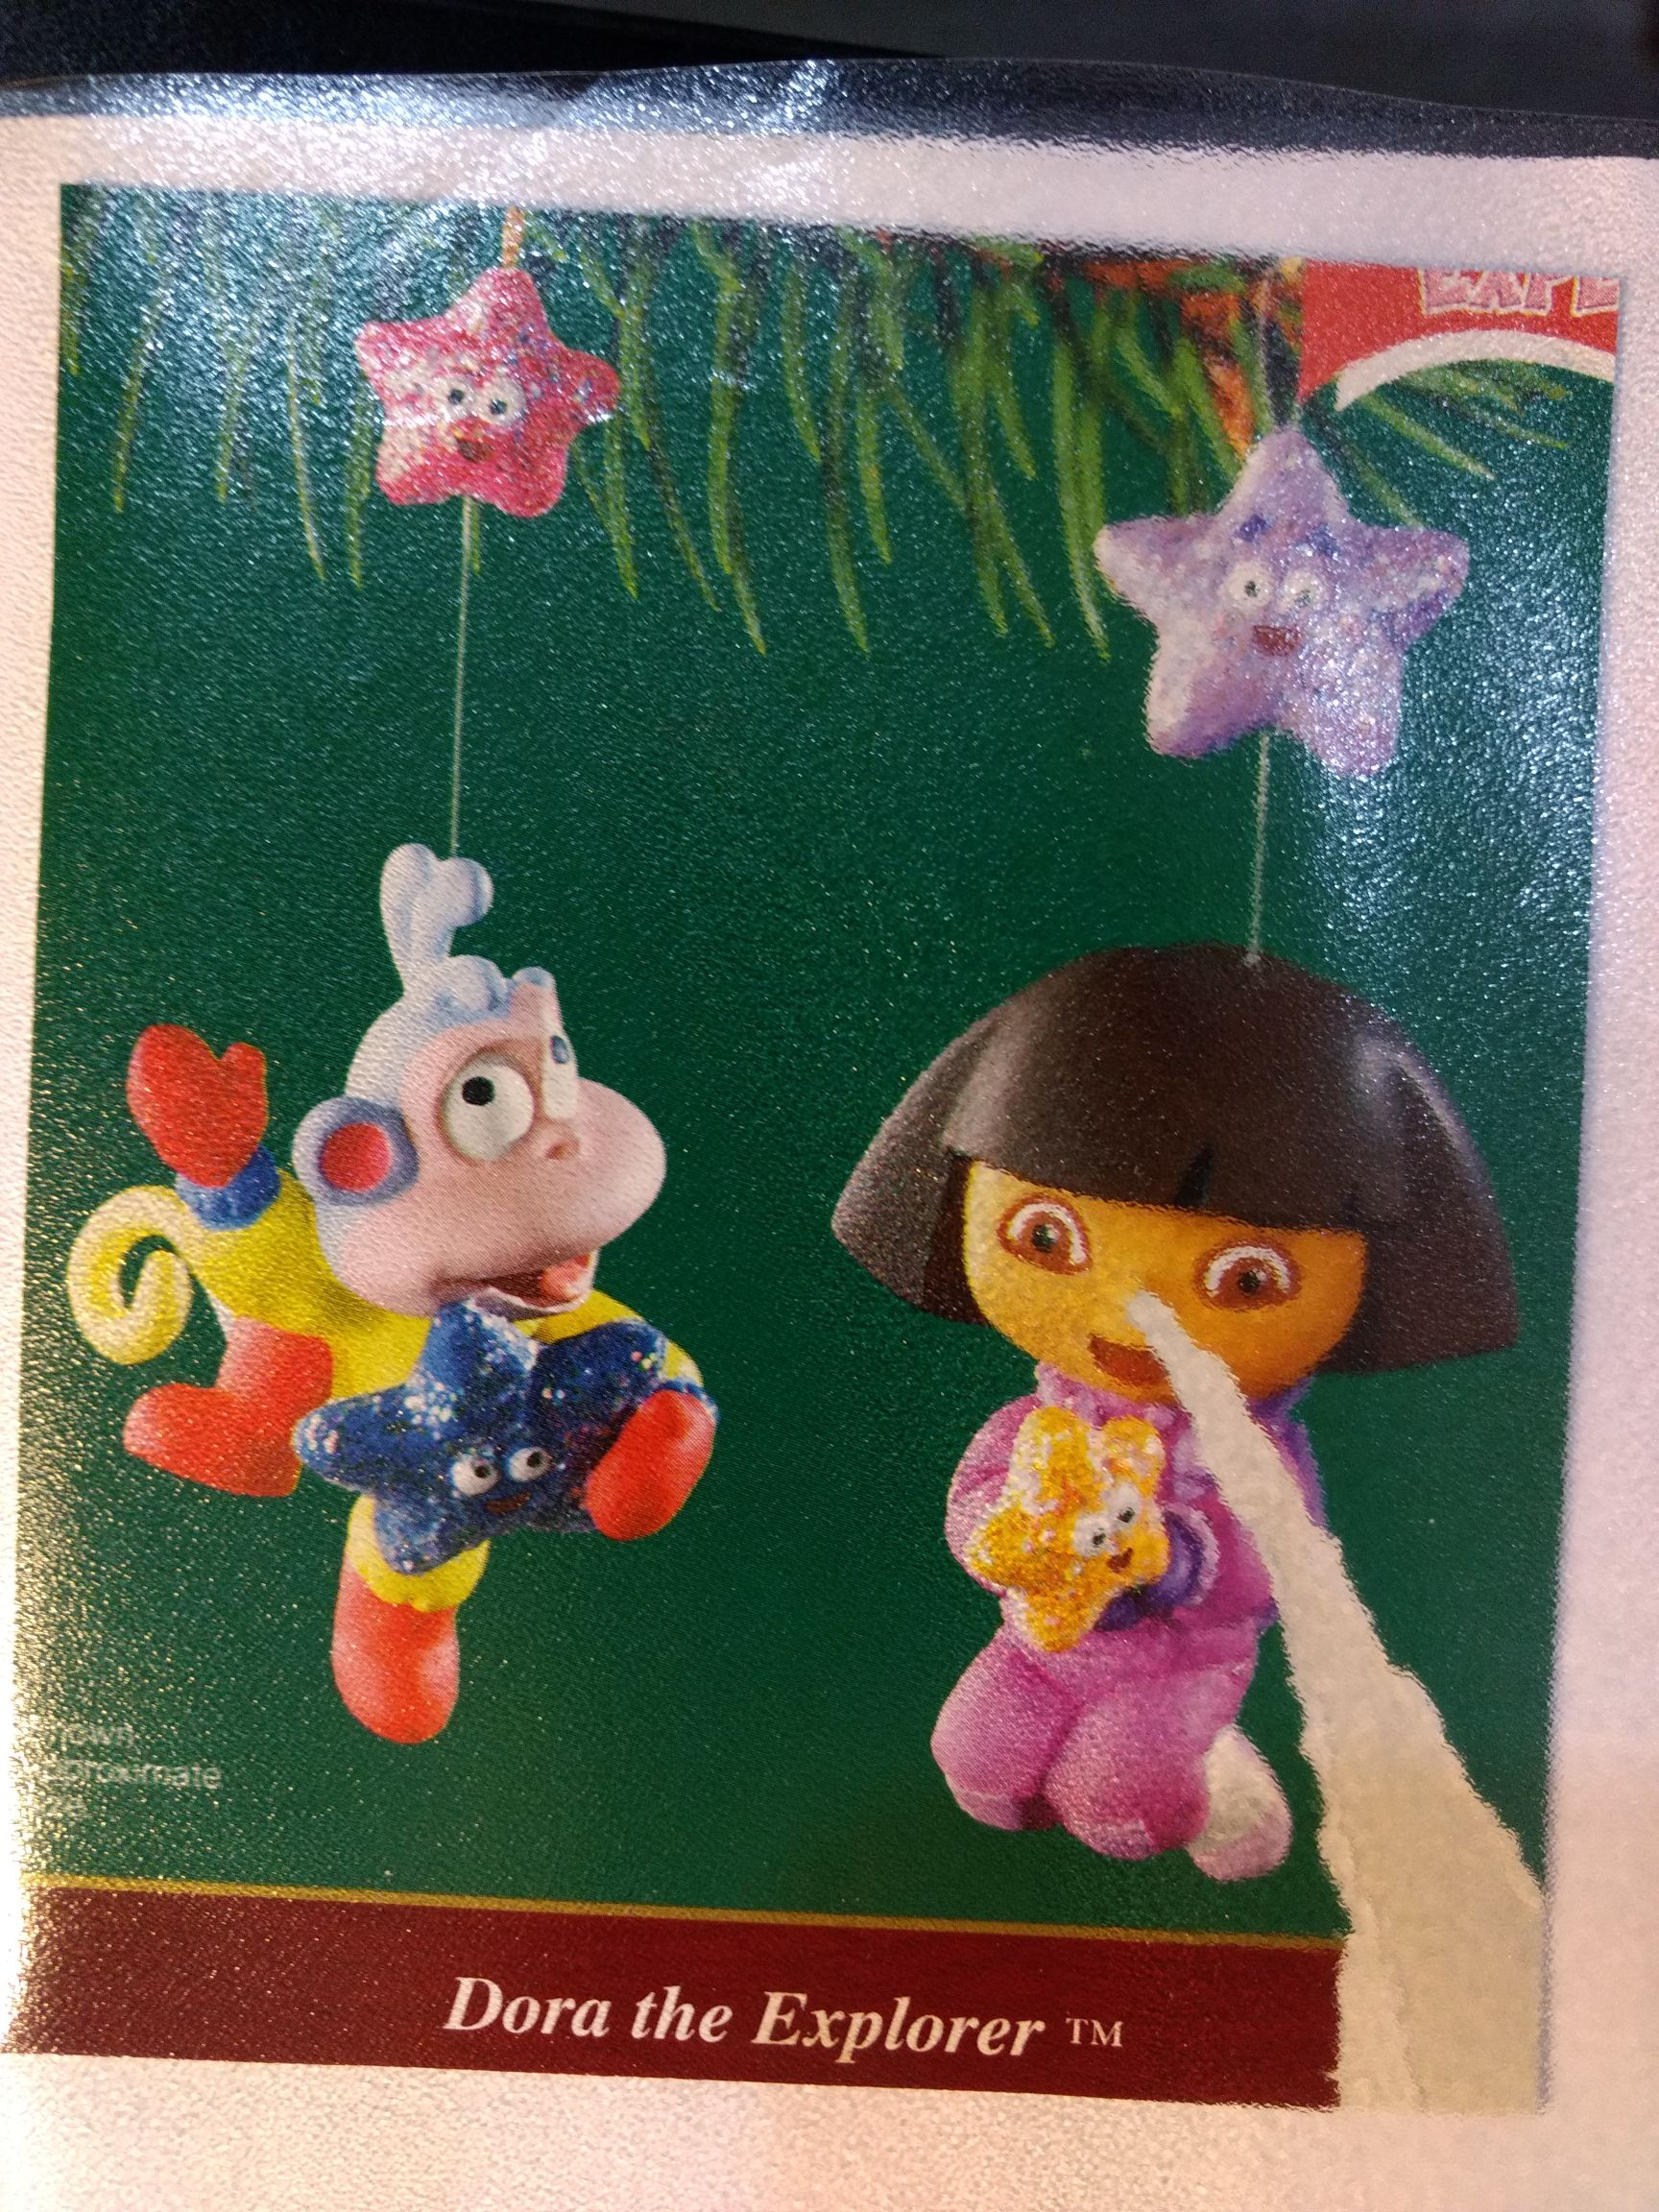 Dora - Dora The Explorer Ornament - Carlton Cards front image (front cover)